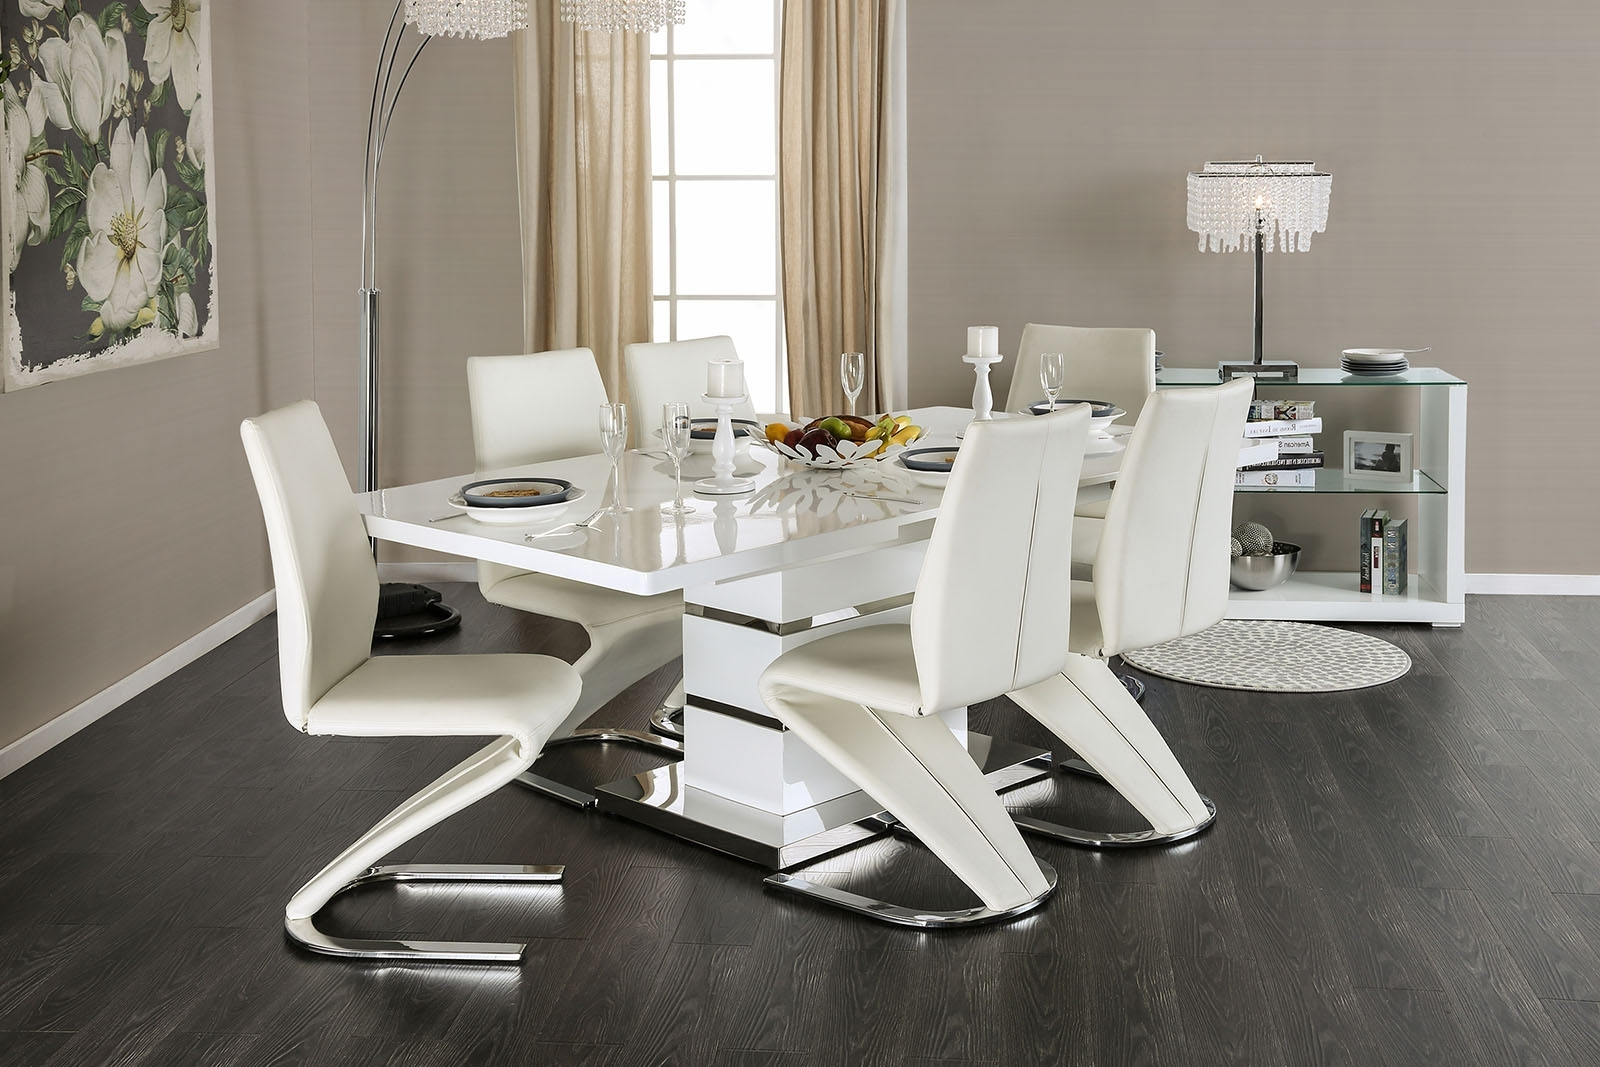 Most Current Midvale Contemporary Style White High Gloss Lacquer Finish & Chrome With Regard To Chrome Dining Tables And Chairs (View 18 of 25)